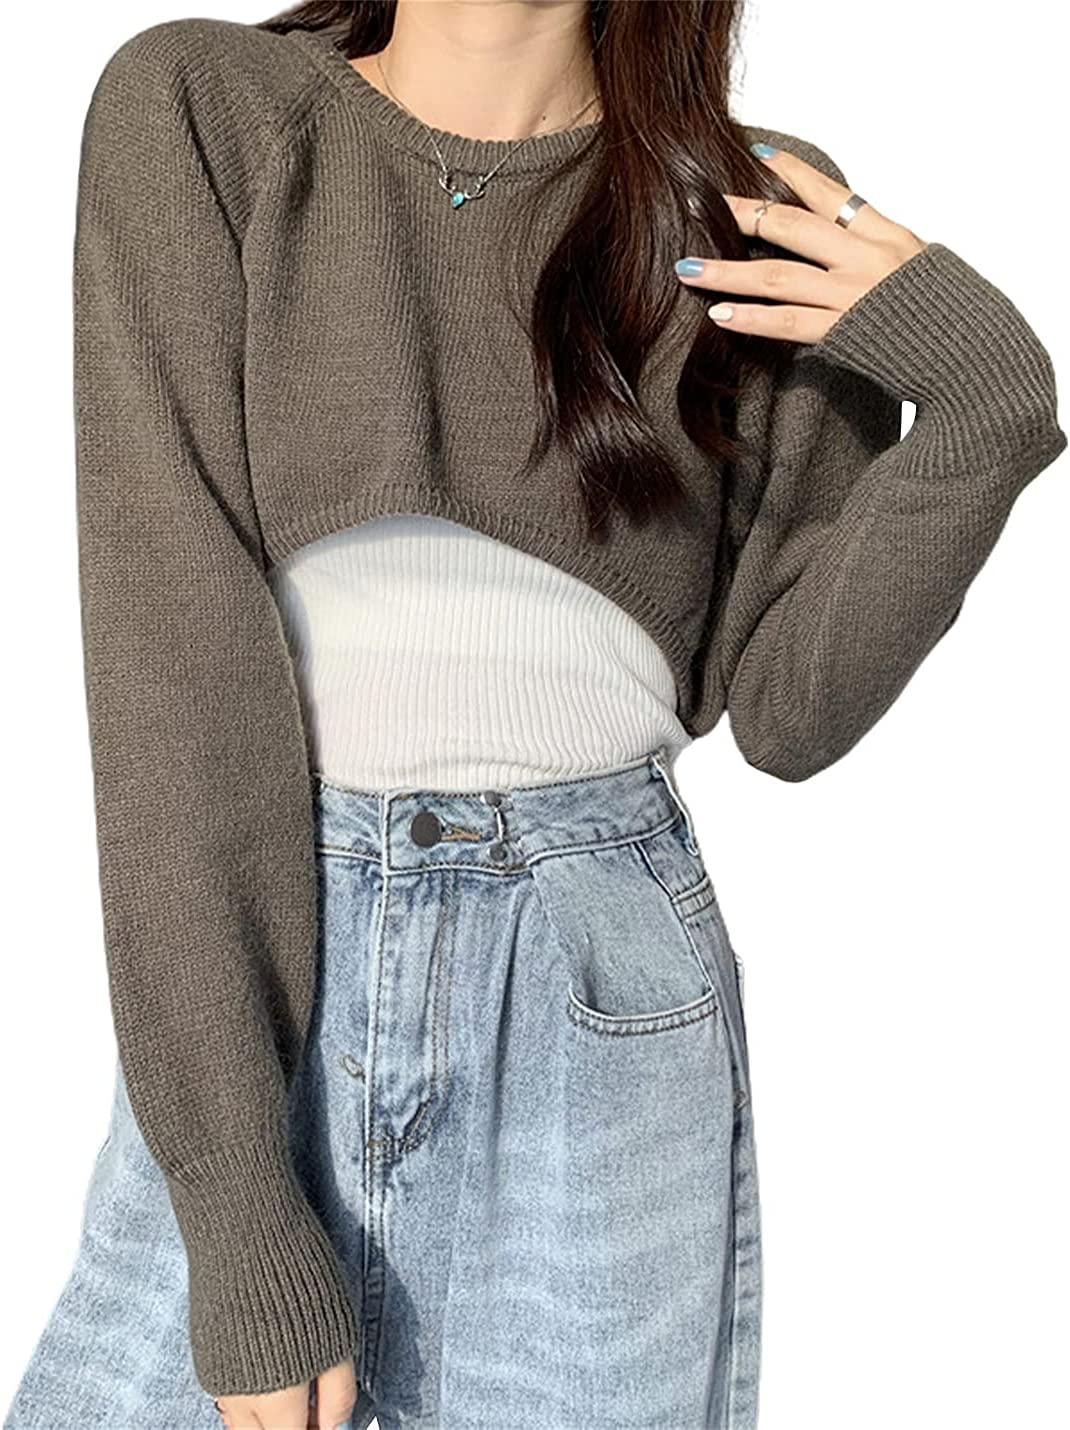 Lentta Women's Cropped Sweater Casual Crewneck Long Sleeves Knit Sweater Pullover Tops